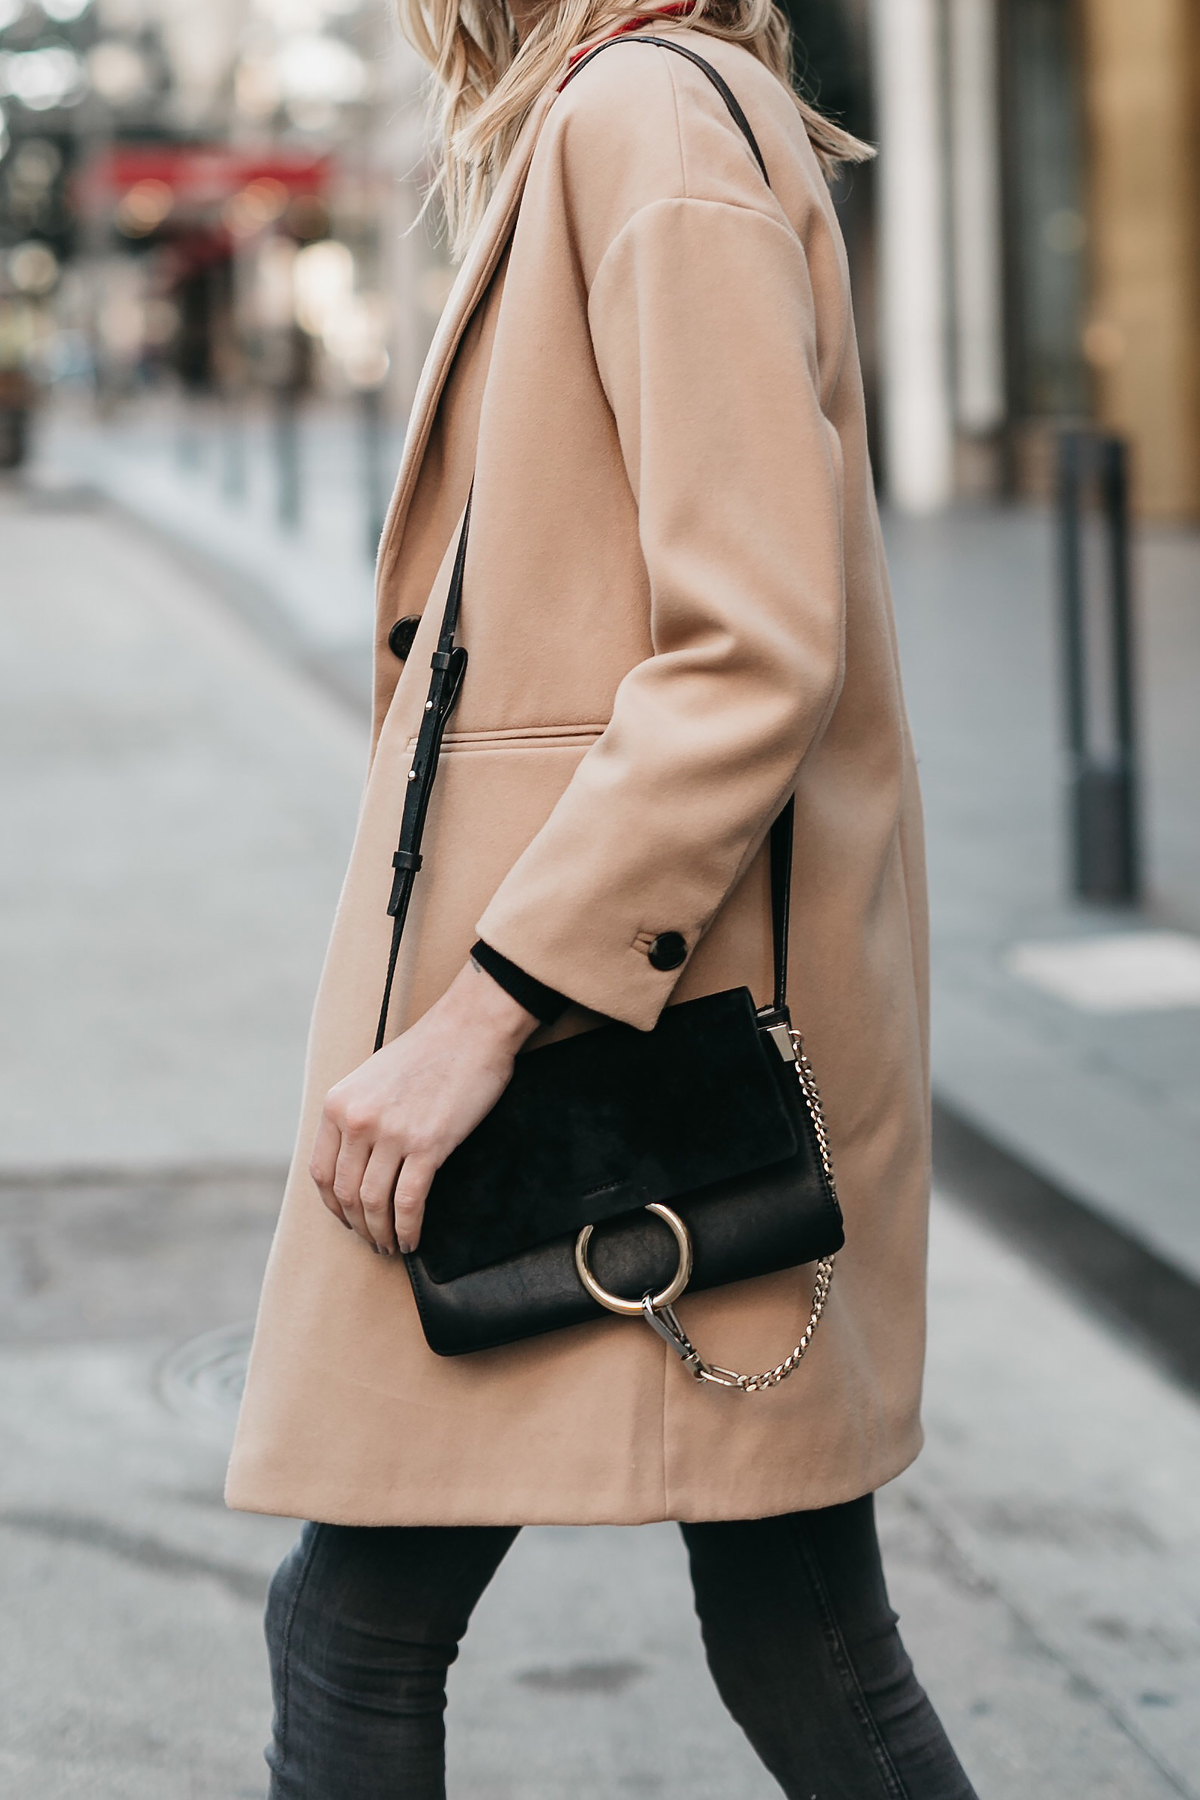 Topshop Camel Coat Chloe Faye Black Handbag Fashion Jackson Dallas Blogger Fashion Blogger Street Style